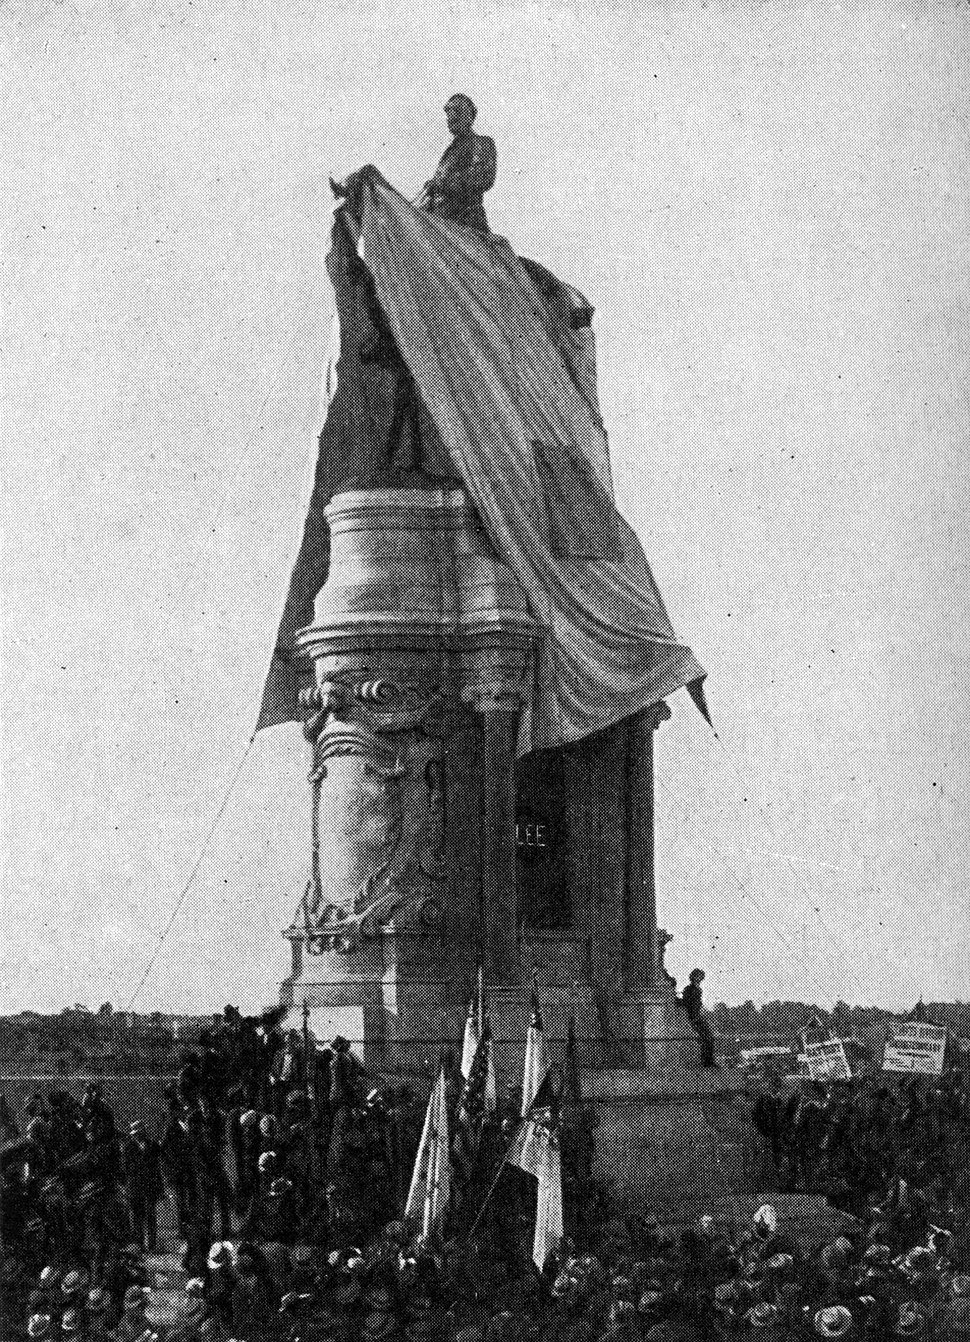 1890 Lee statue unveiling